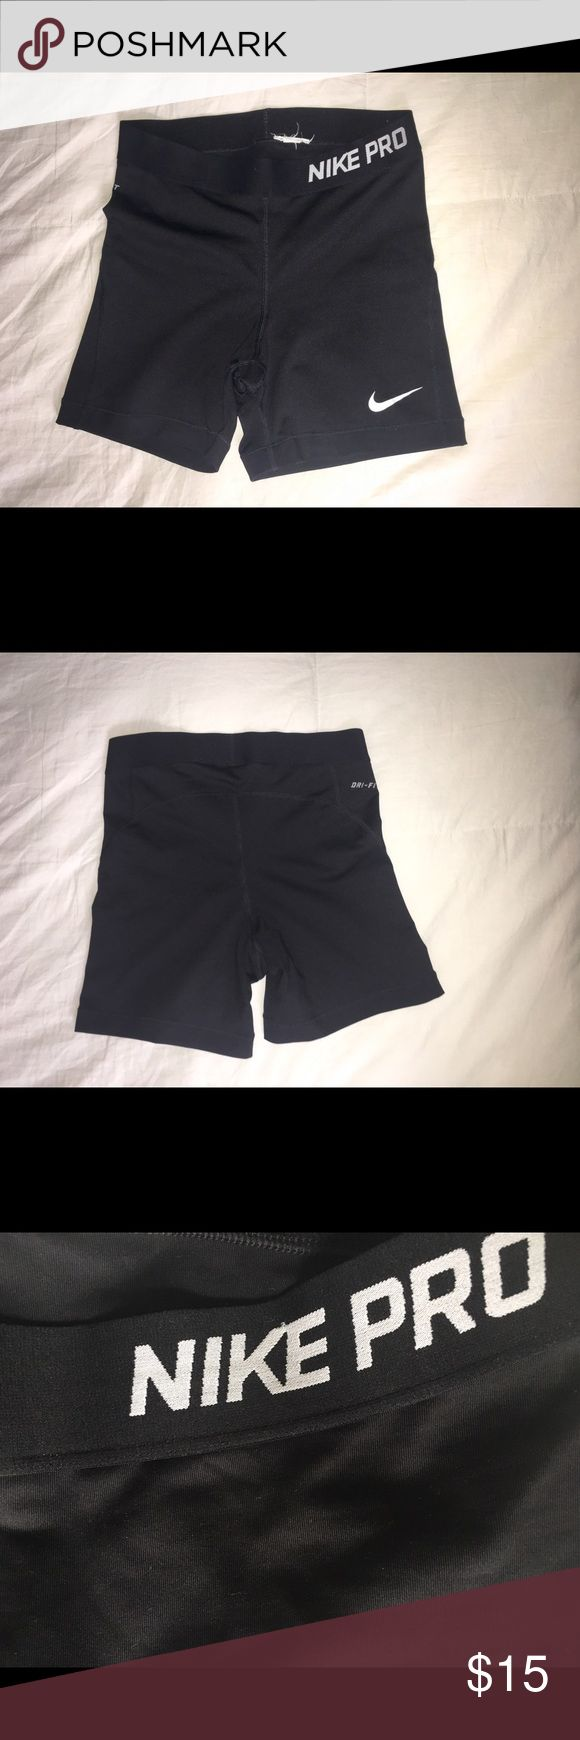 "Nike Pro Dri-FIT Women's Training shorts Nike Pro Training Shorts- Super comfy Black with White Nike logo! Dri-FIT with 3"" inseam, hardly worn. Nike Shorts"